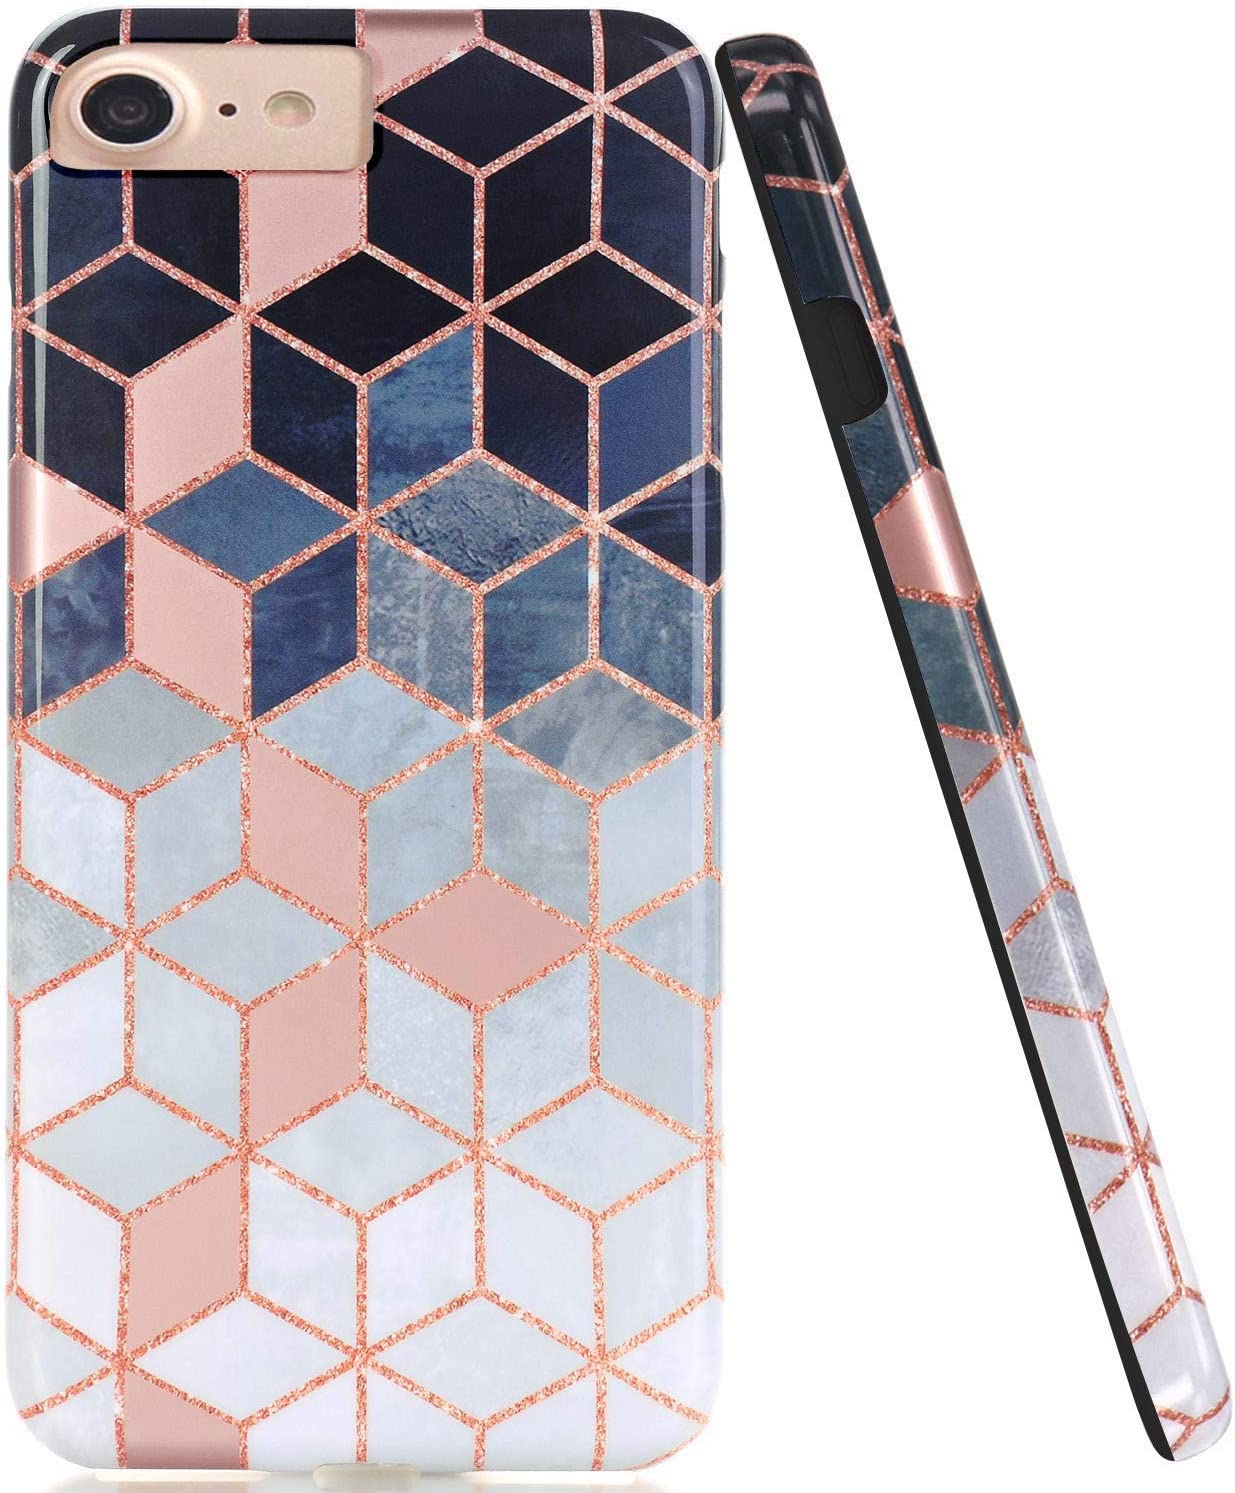 JAHOLAN Bright Rose Gold Cube Design Black Bumper Glossy TPU Soft Rubber Silicone Cover Phone Case Compatible with iPhone 7 iPhone 8 iPhone 6 6S iPhone SE 2020